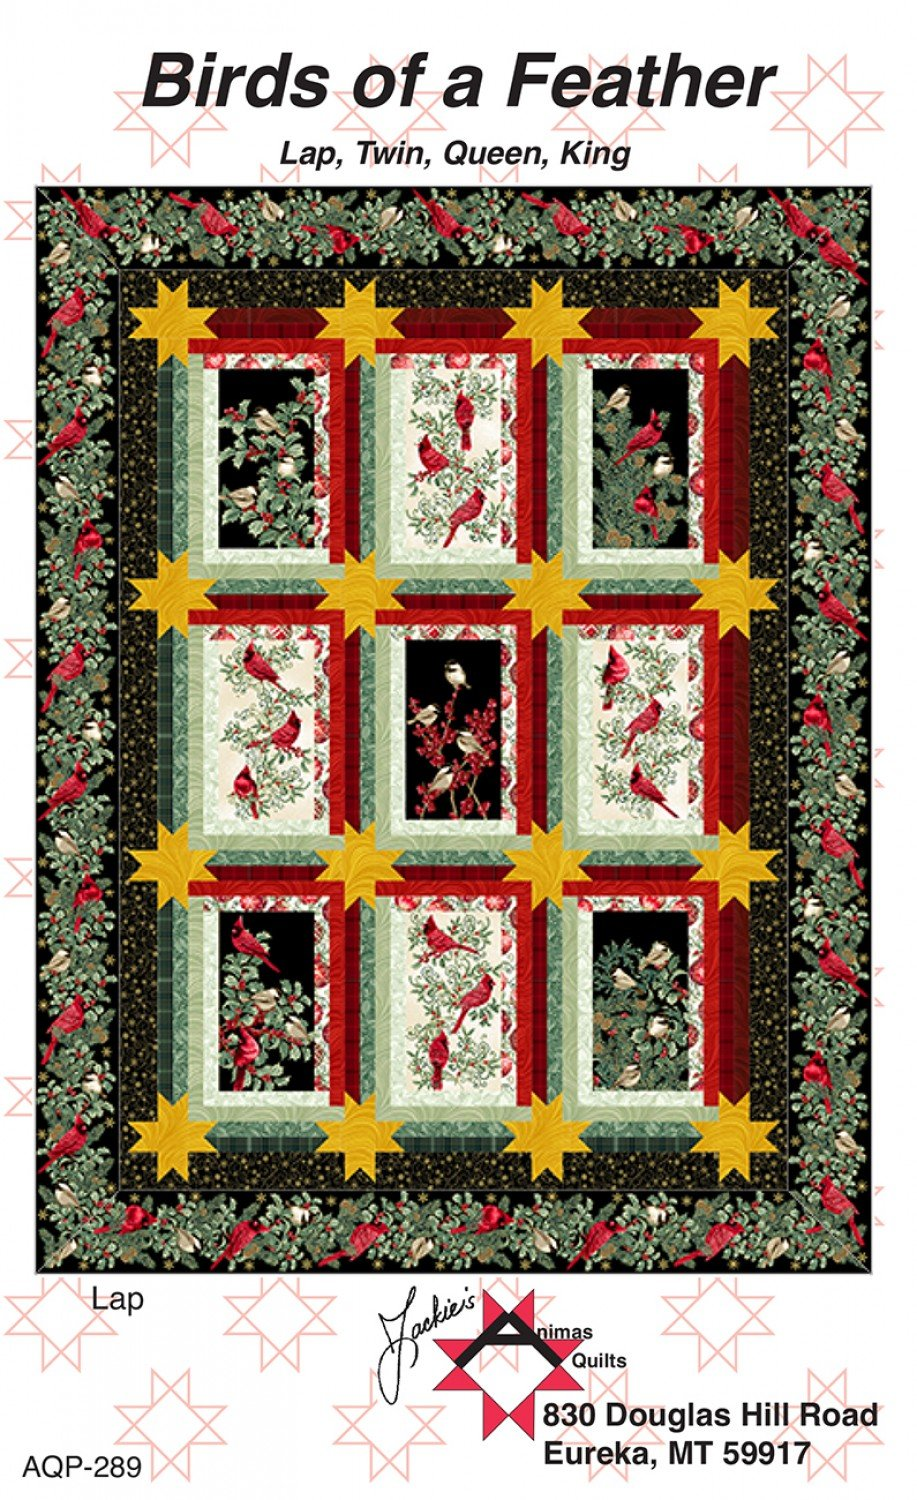 Birds of a Feather Lap Quilt Kit